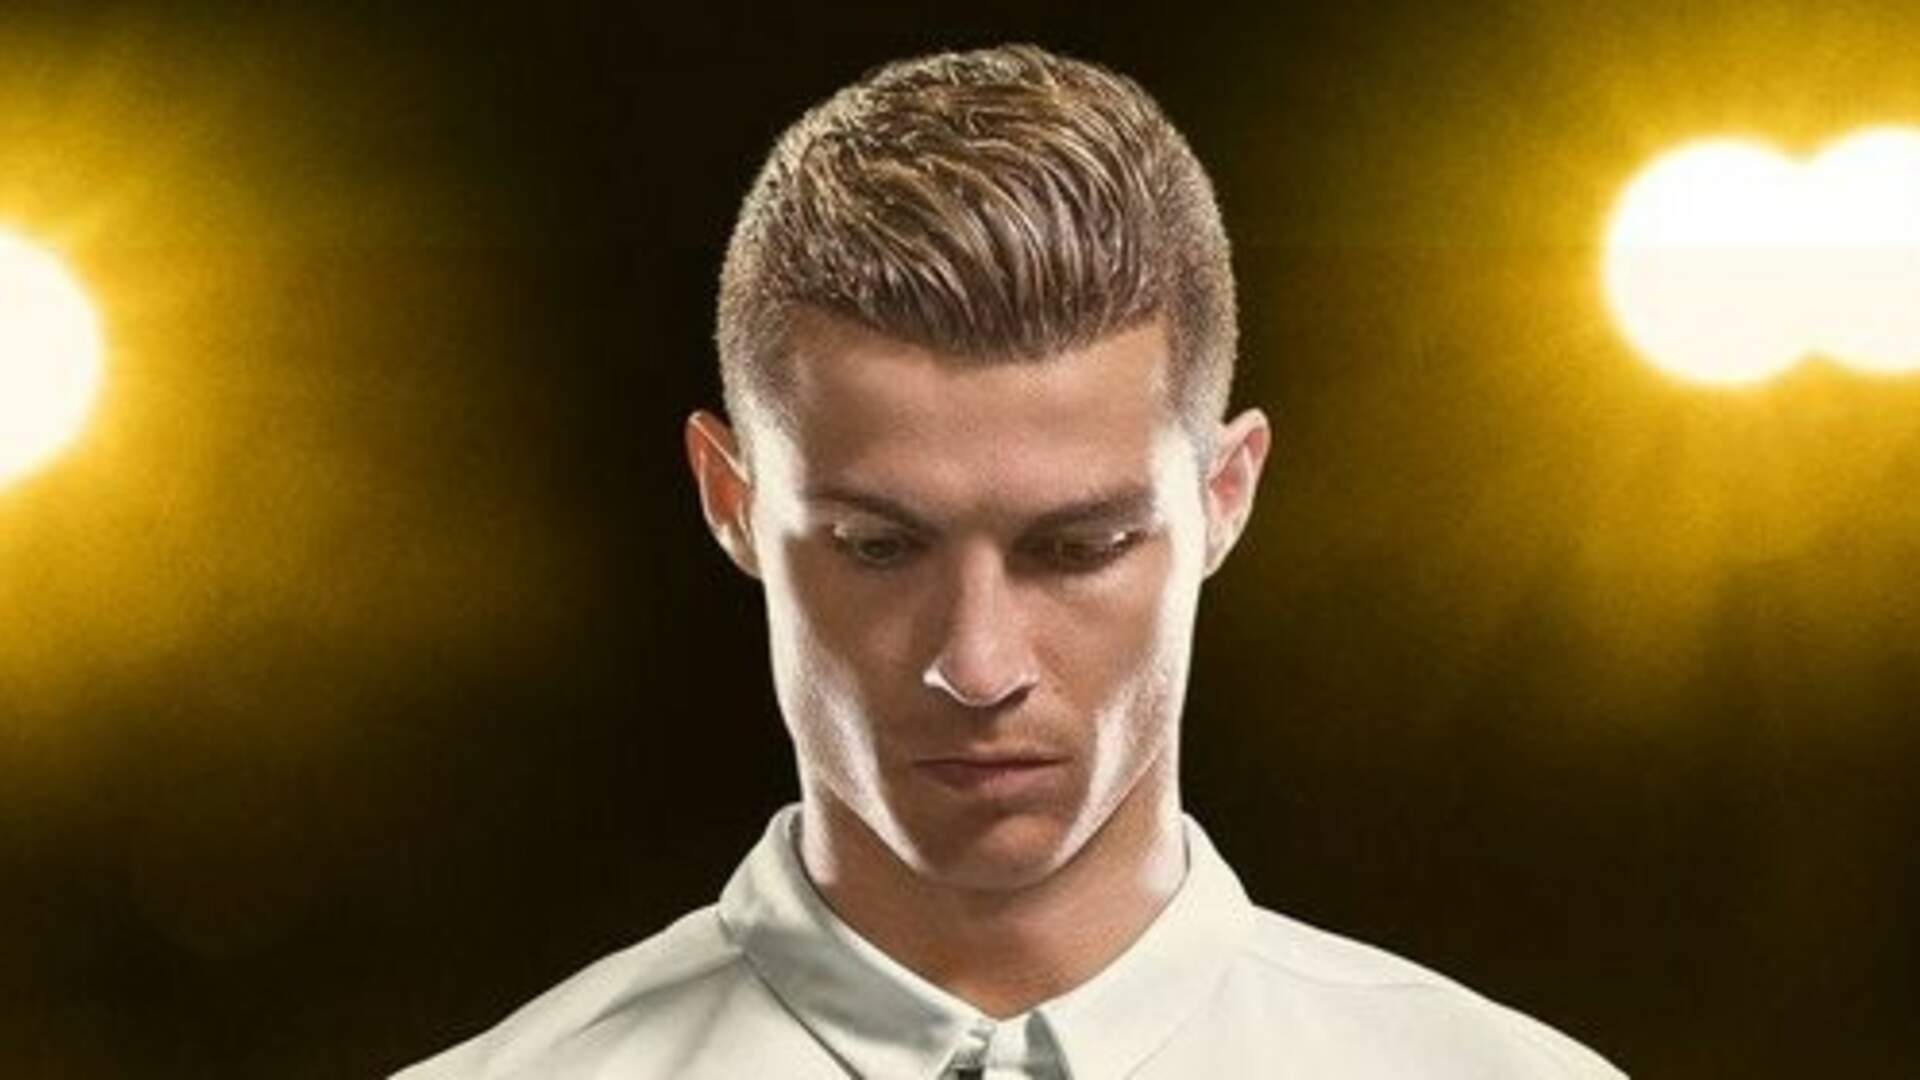 FIFA 18 Reviews, Demo, Career Mode, Gameplay, Pre-Order PS4, Xbox One, Switch, Ronaldo - Everything we Know